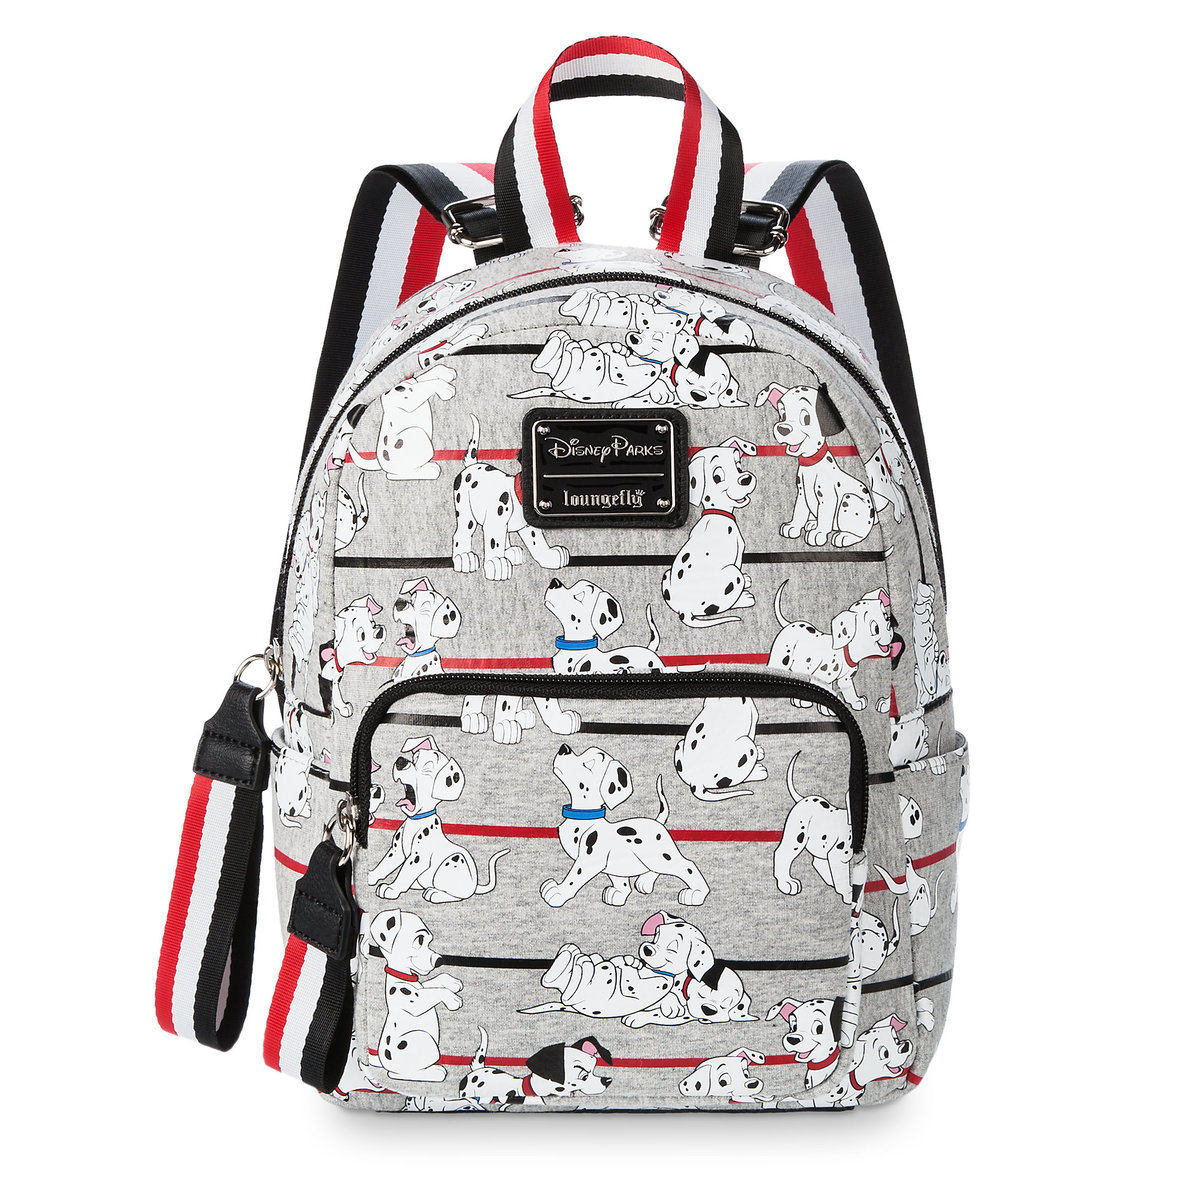 a7885719a0b Add to My Lists. Disney Parks Loungefly Mini Backpack ...